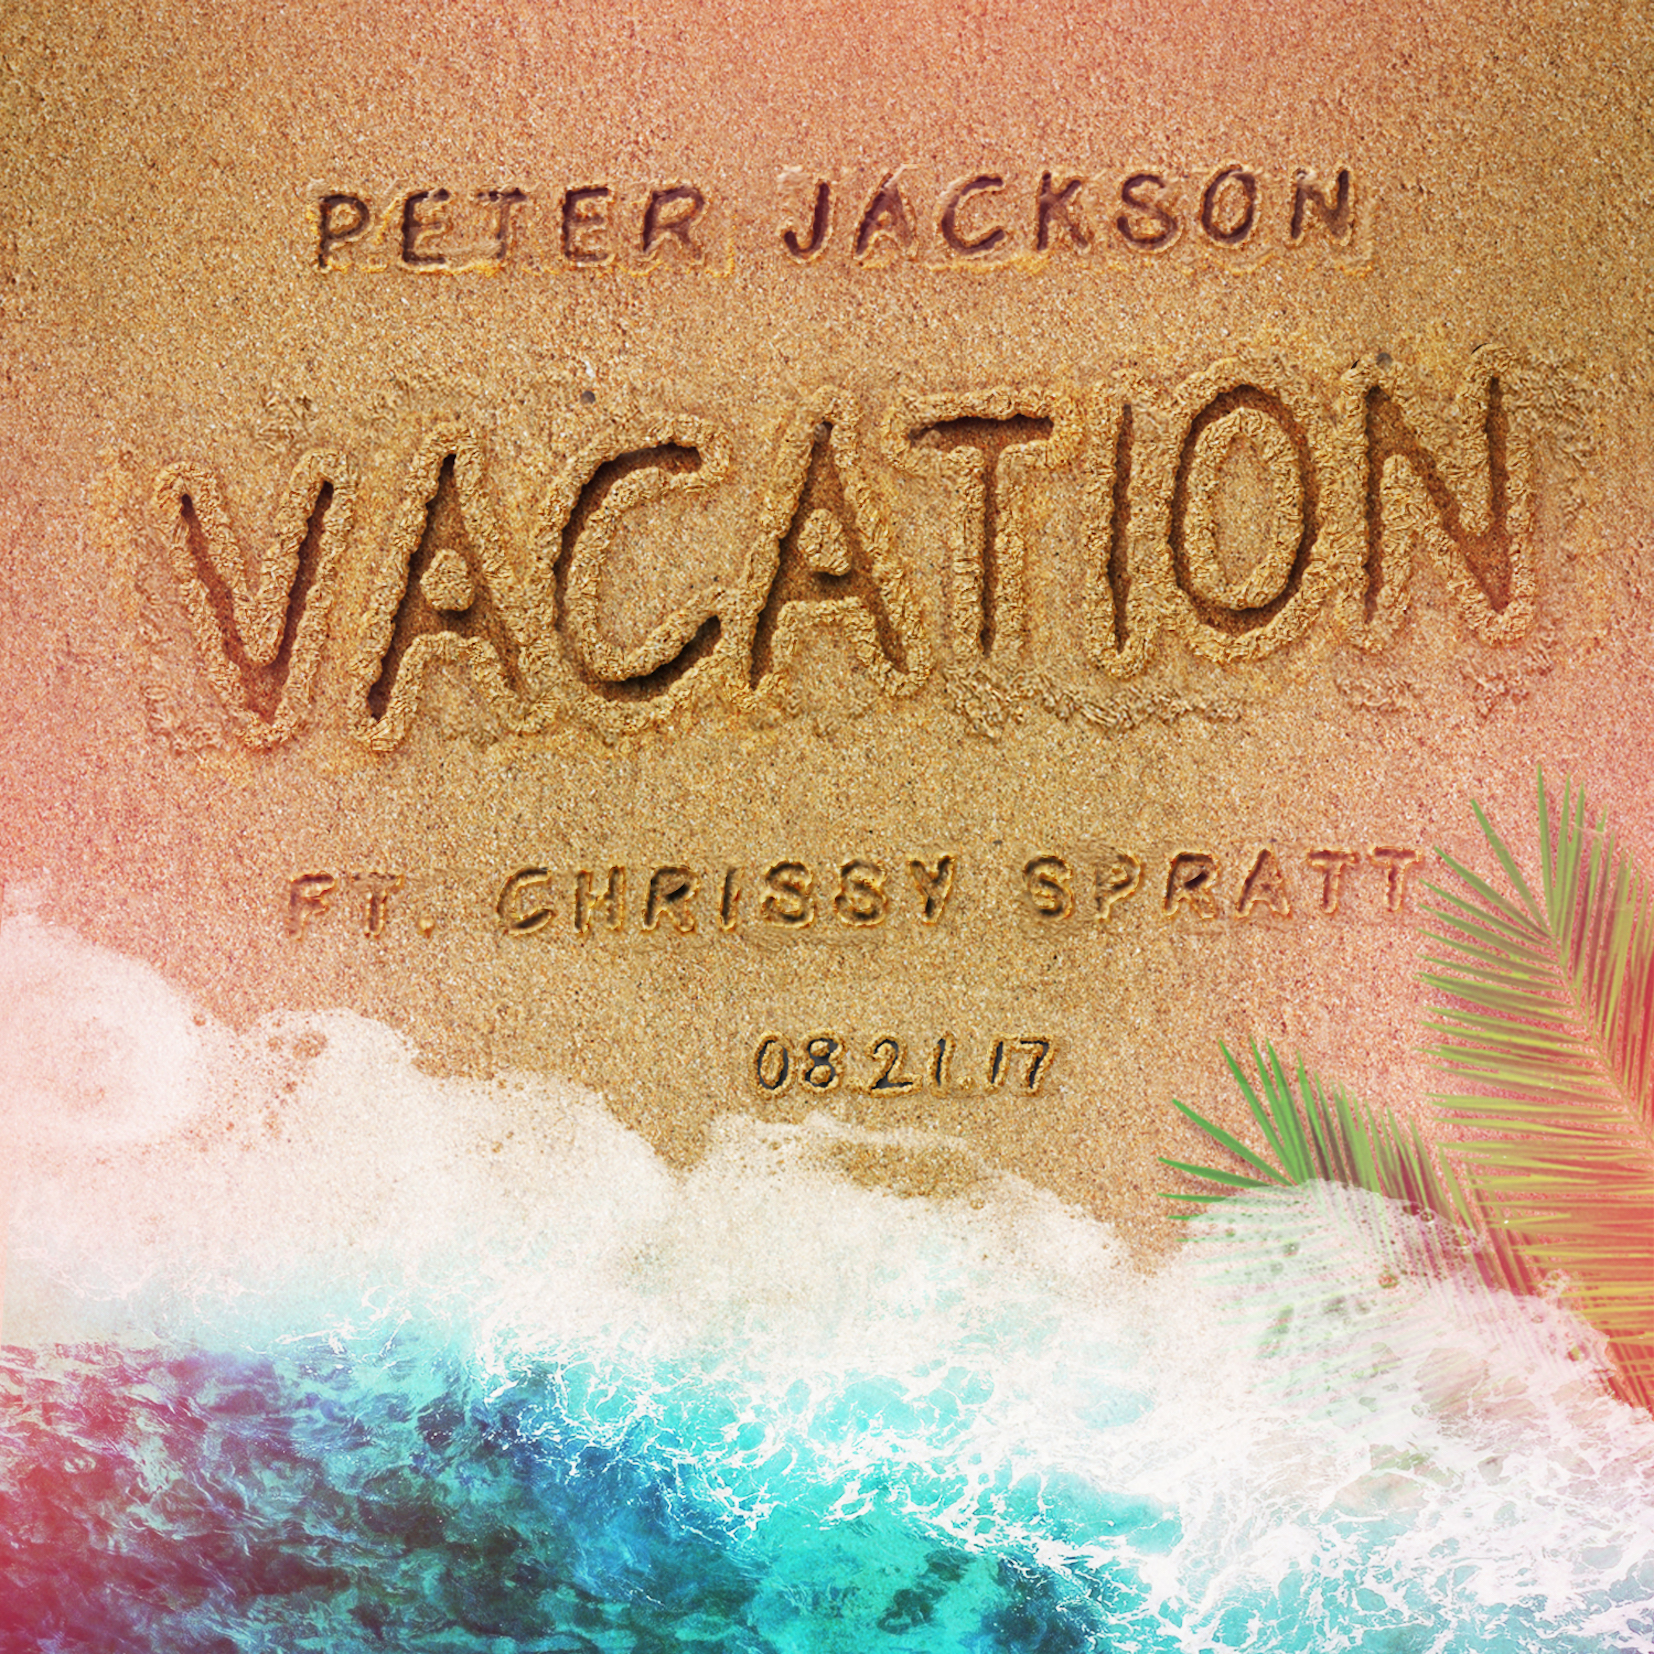 "New Music: Peter Jackson – ""Vacation"" (Feat. Chrissy Spratt)"